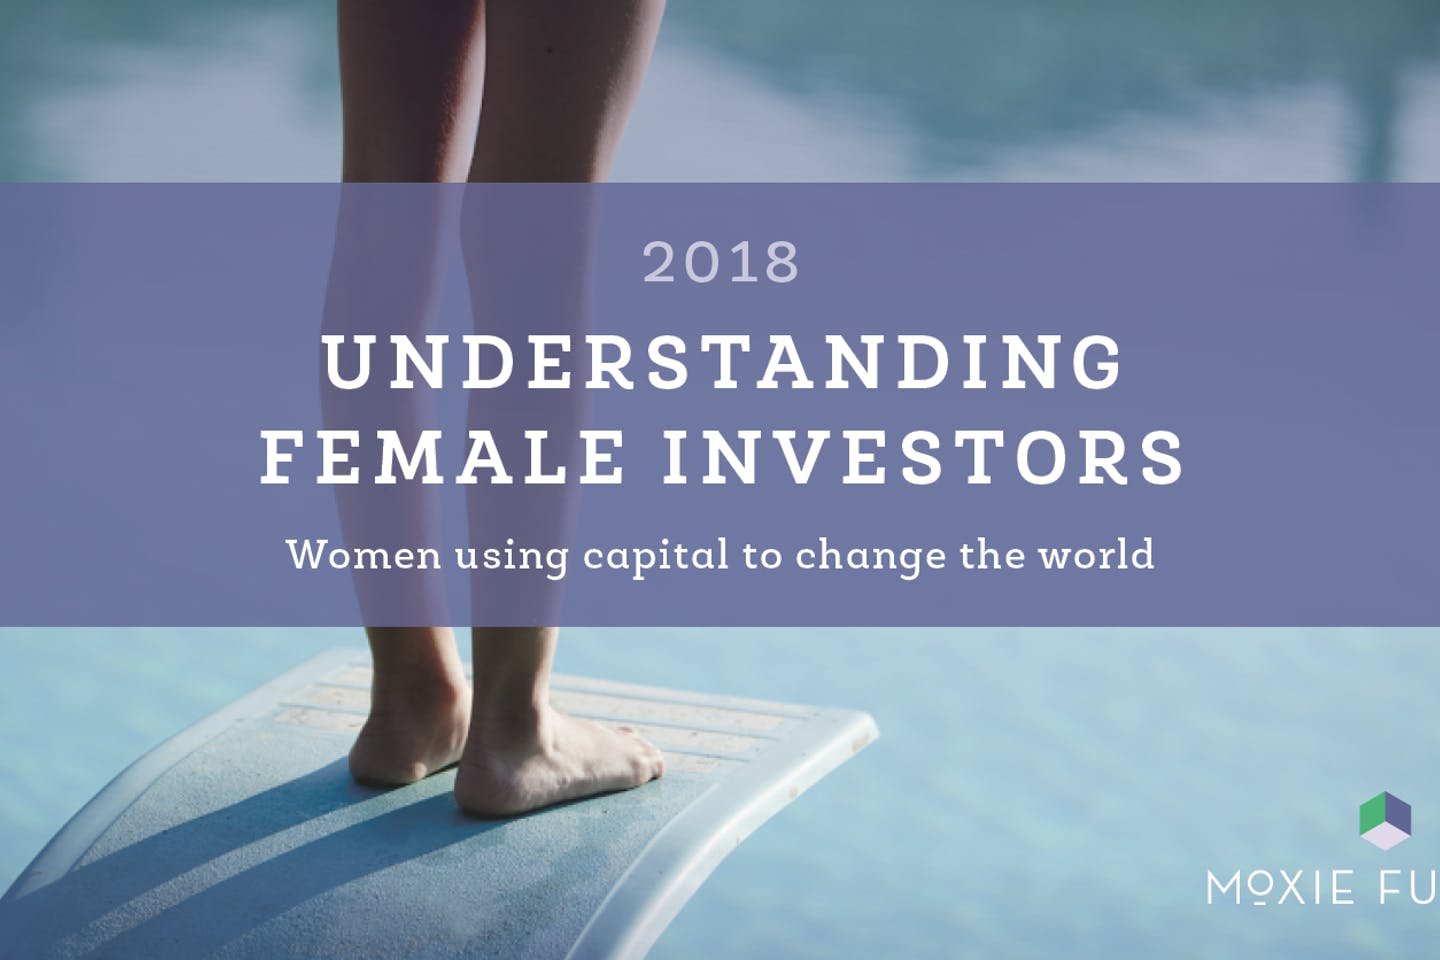 Moxie Future's survey reveals almost  two thirds of women motivated to invest responsibly